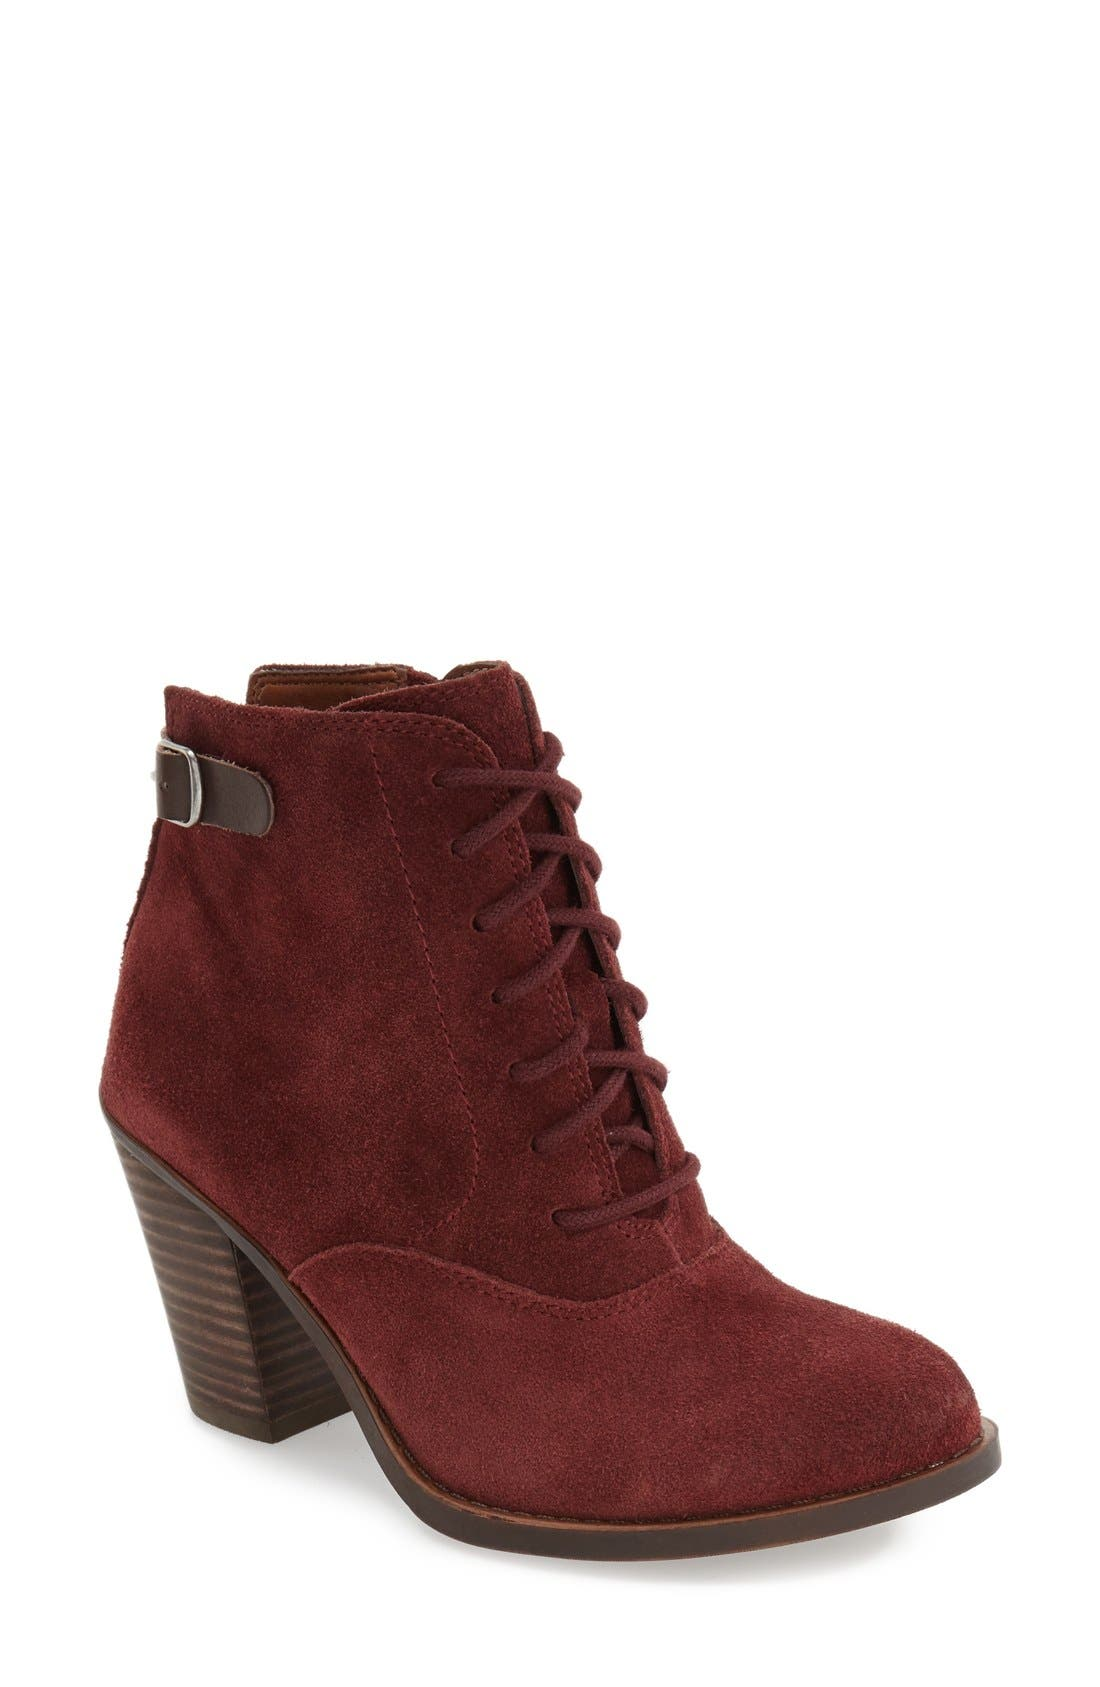 LUCKY BRAND 'Echoh' Lace-Up Bootie